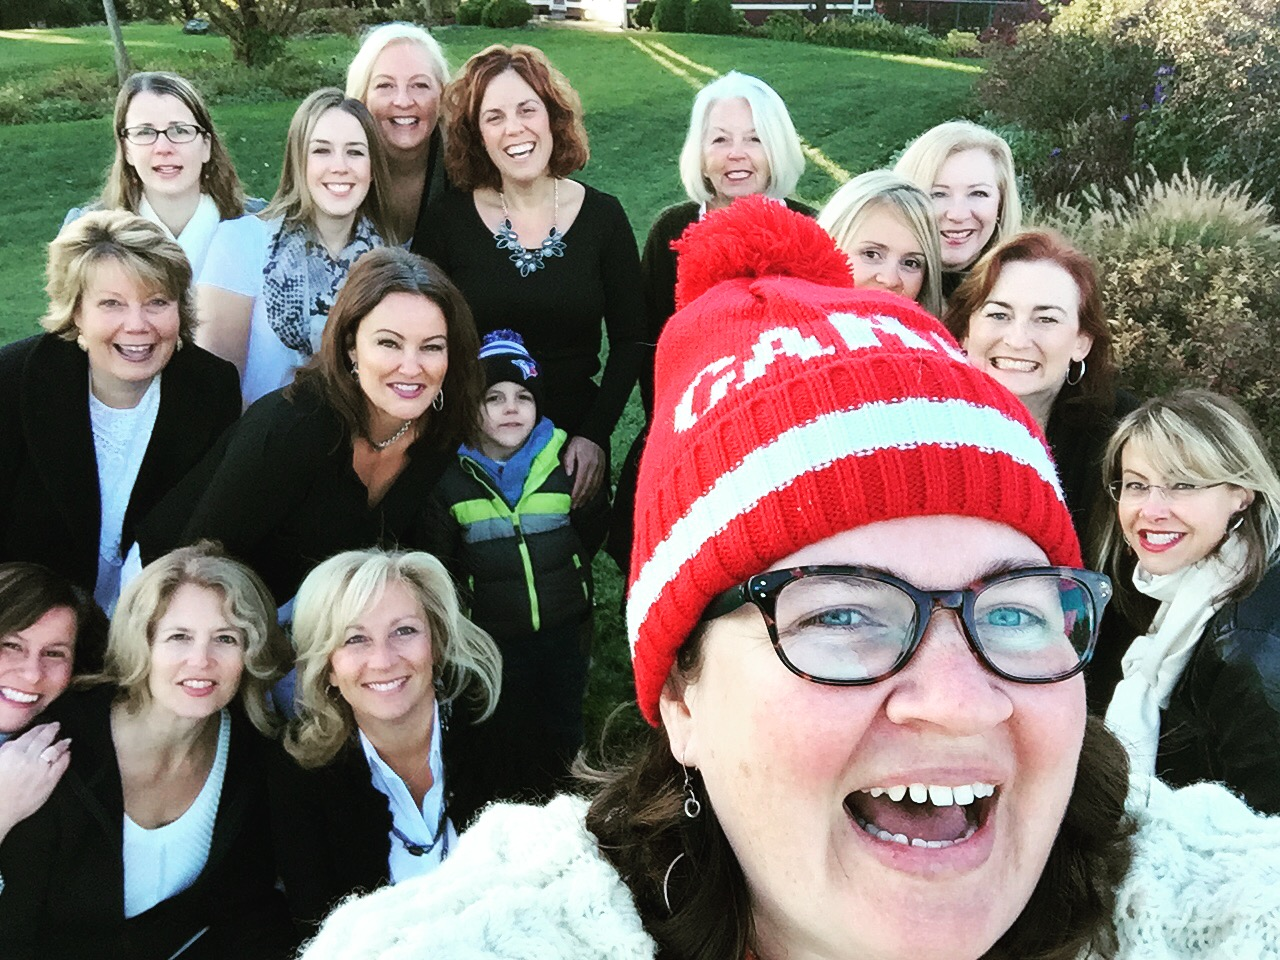 Candid Phone Group Selfie of Circle of Women